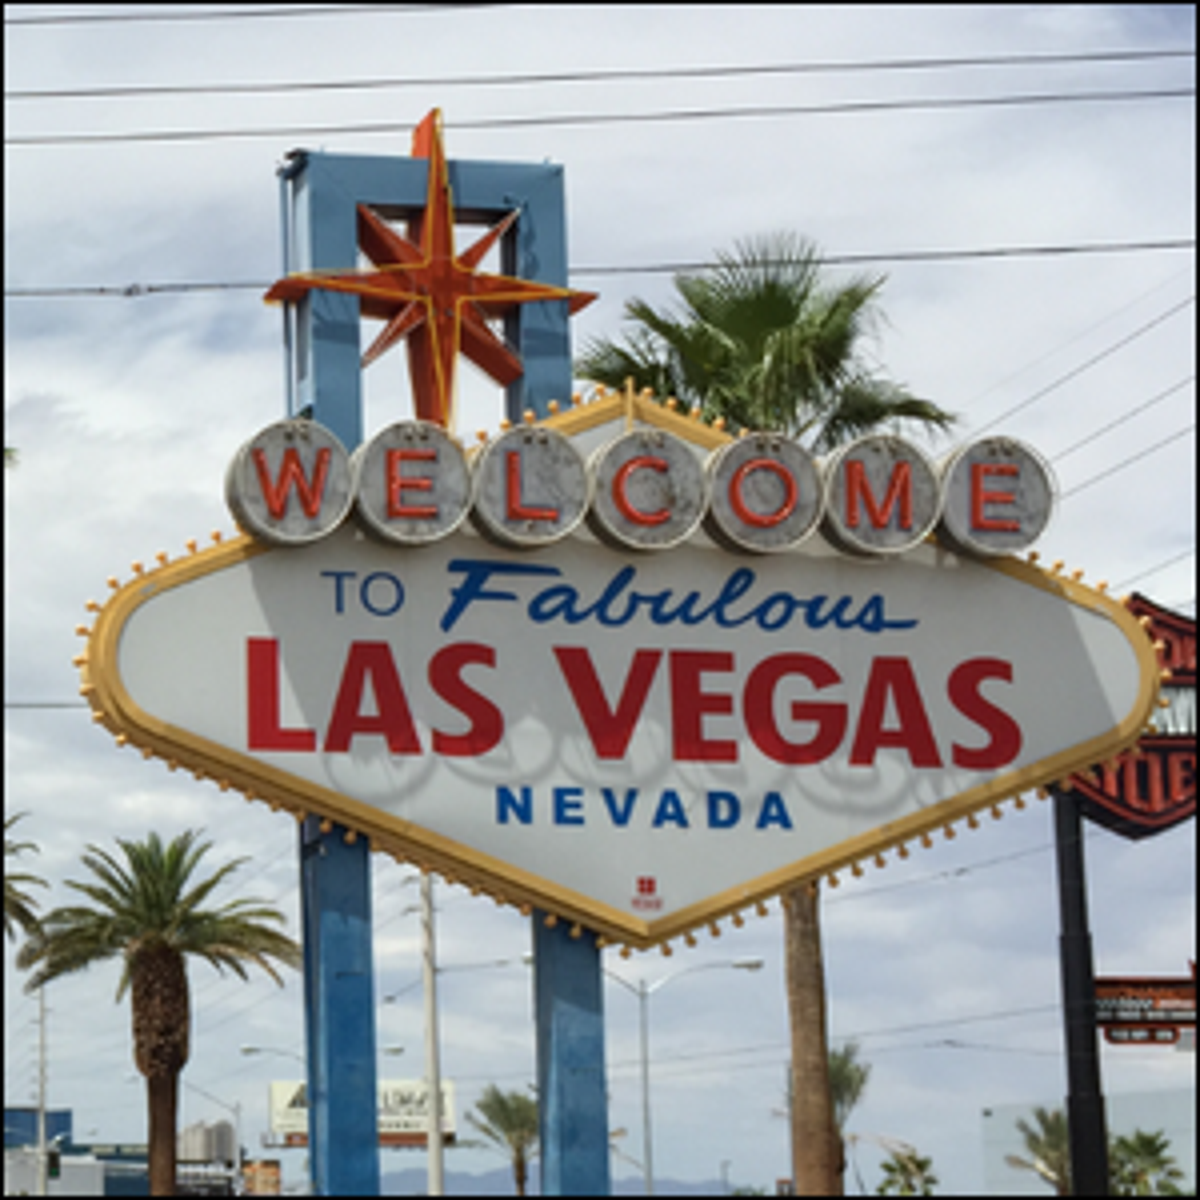 A photograph of the 1950s era Welcome to Las Vegas sign.